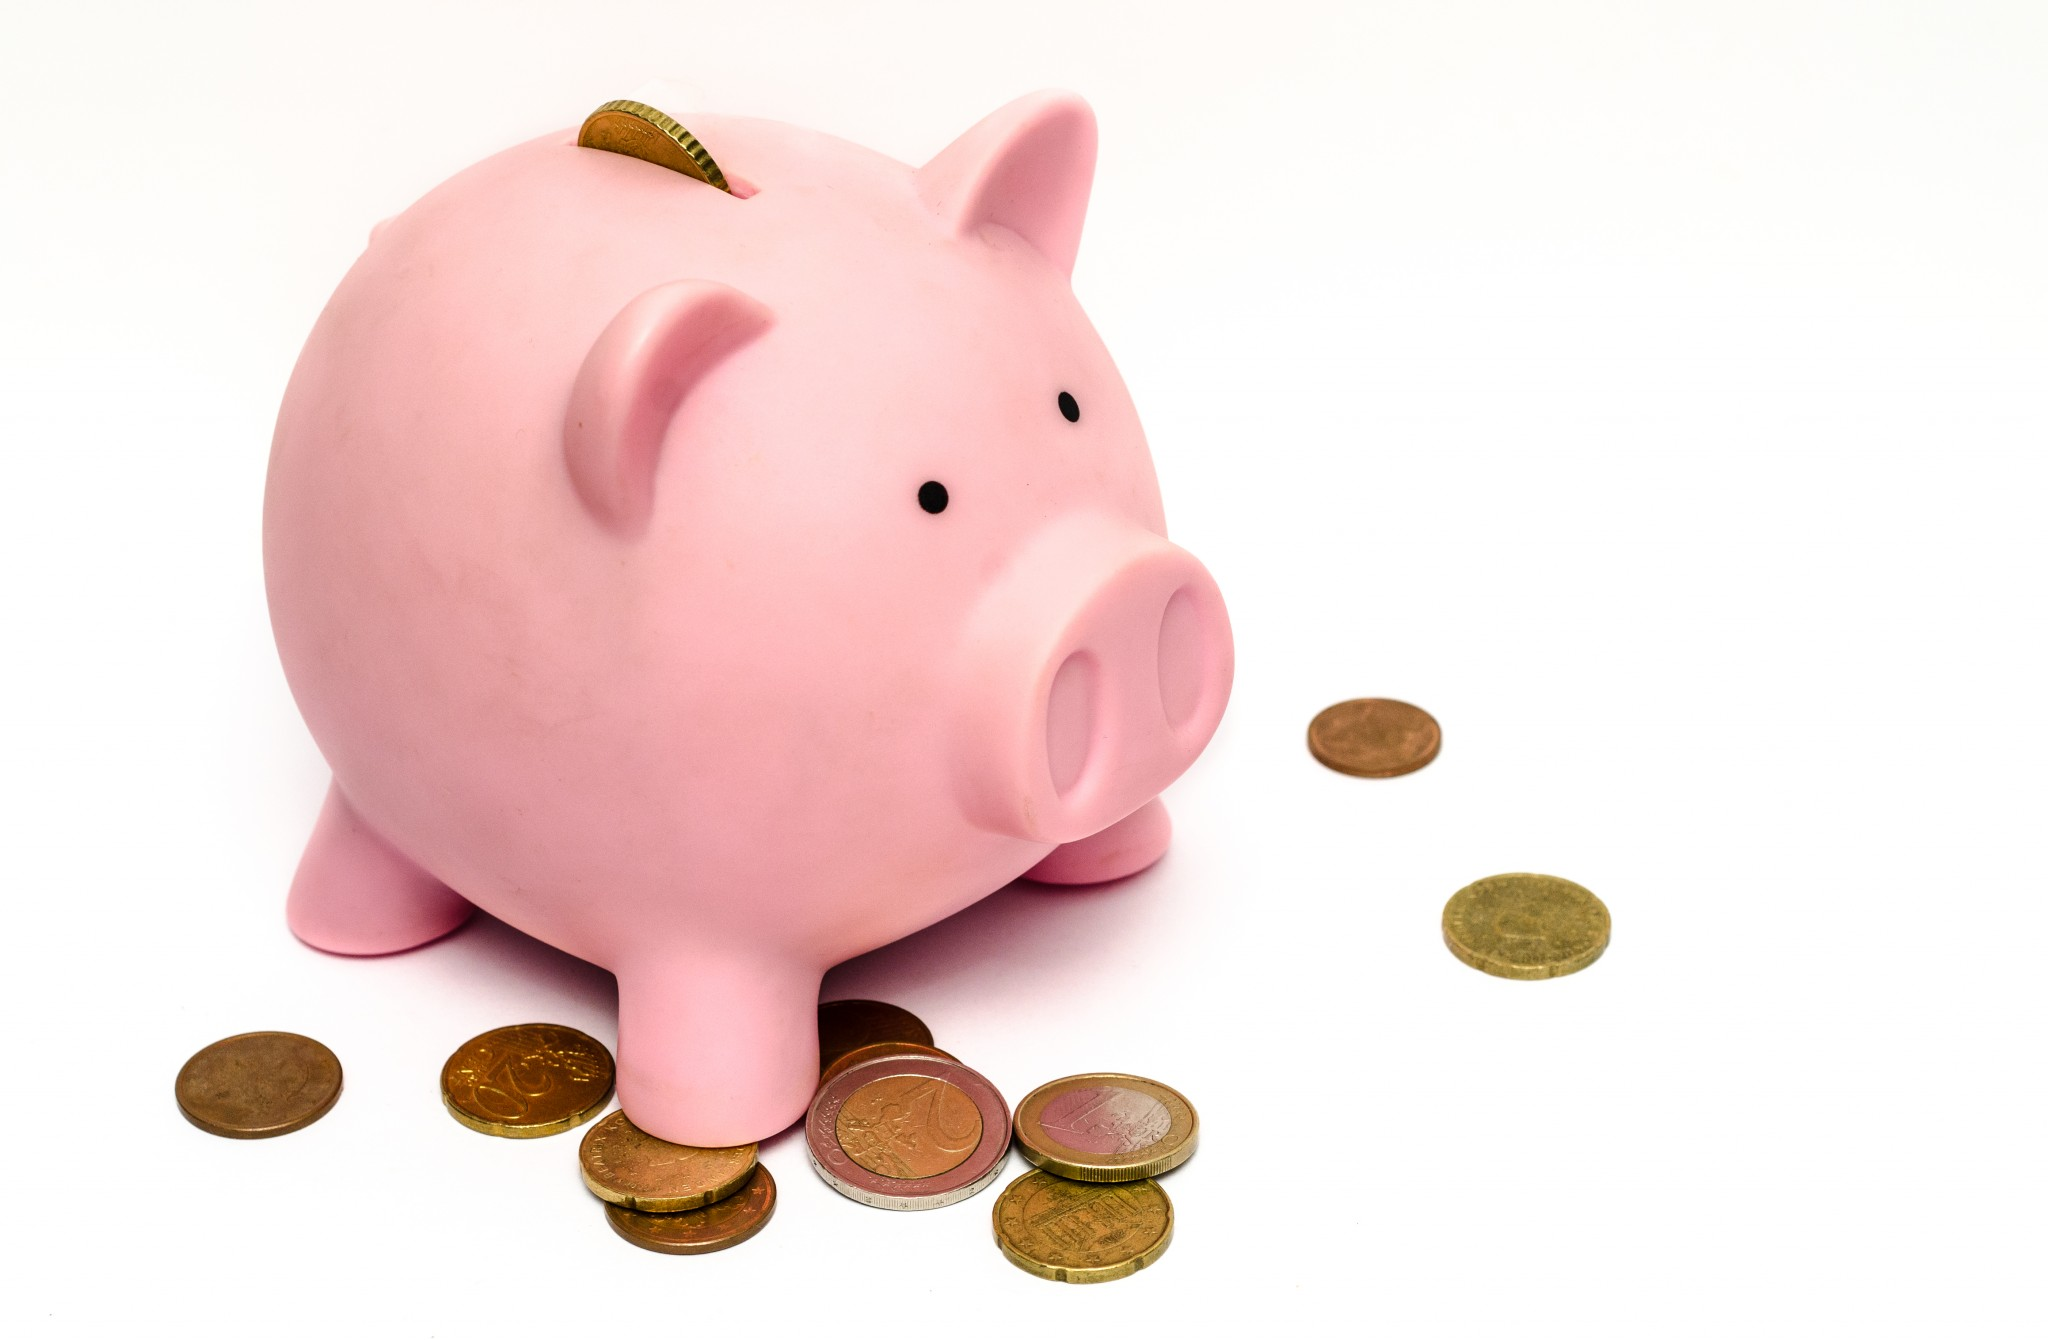 piggy - 8 top tips on how to boost your piggy bank!